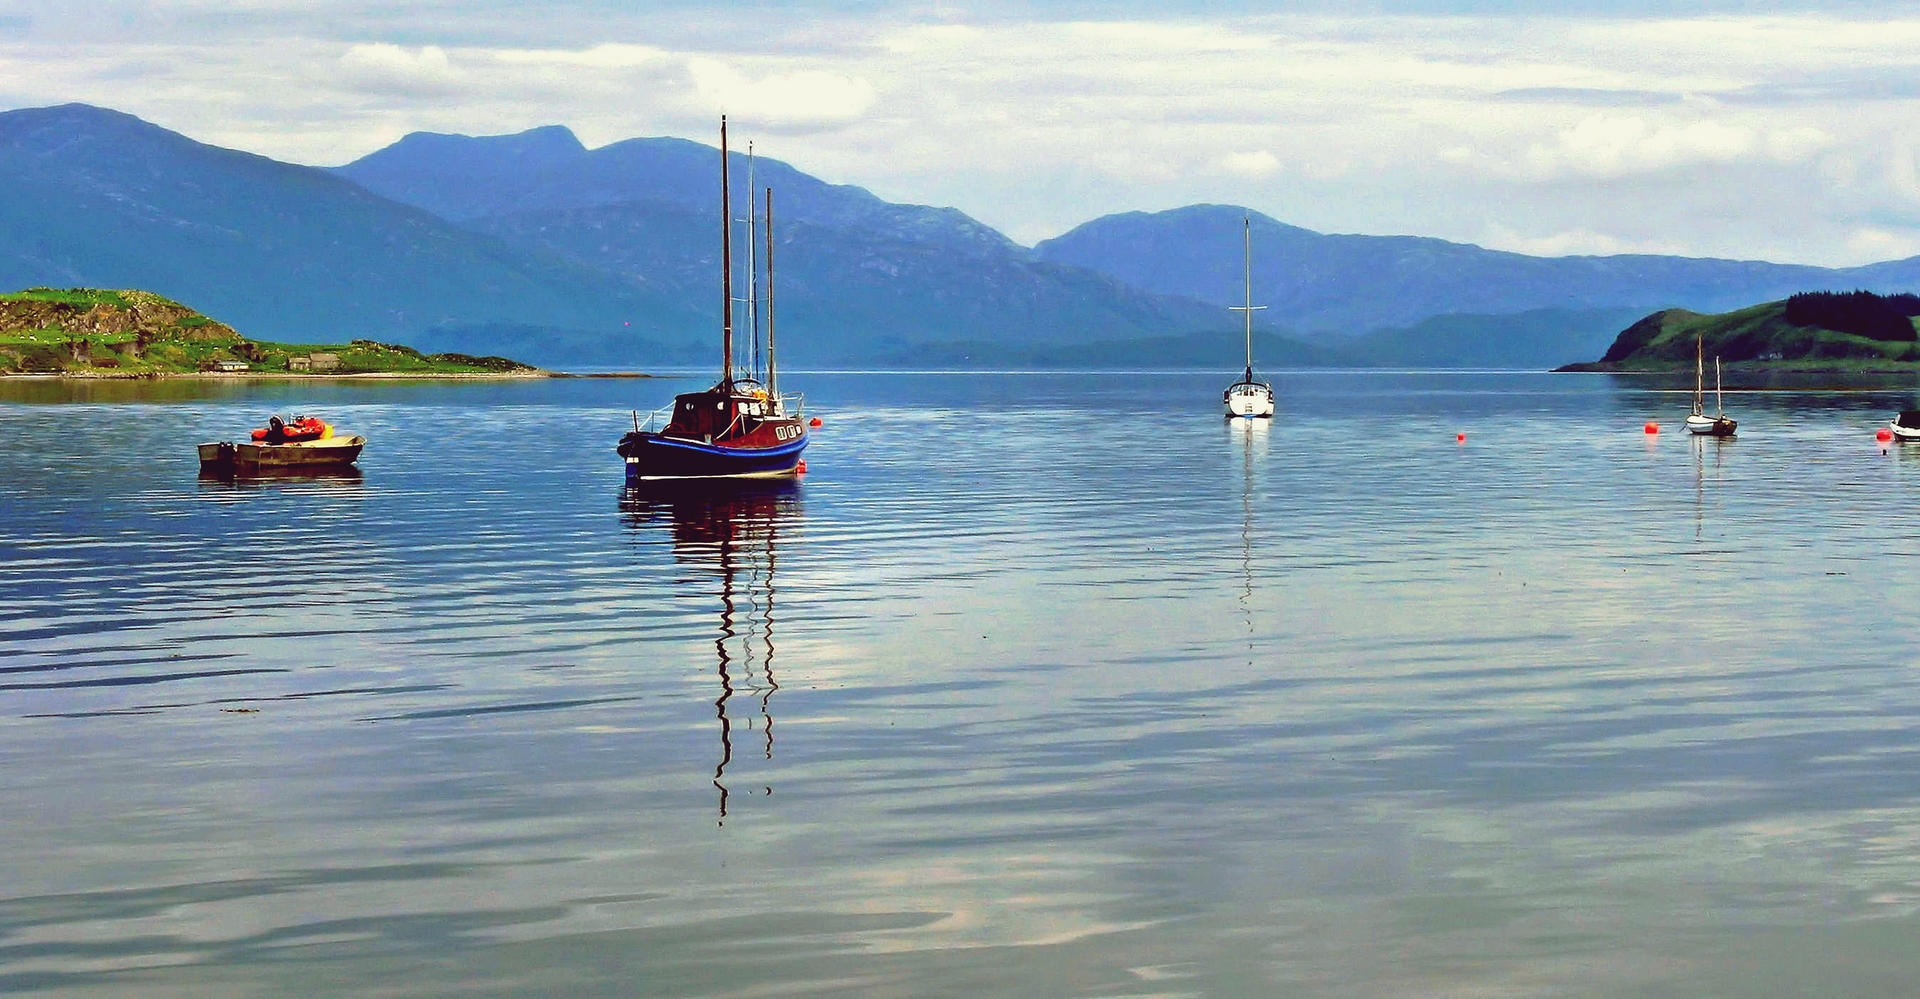 Sailing boats in loch near Oban with mountain scenery in scotland